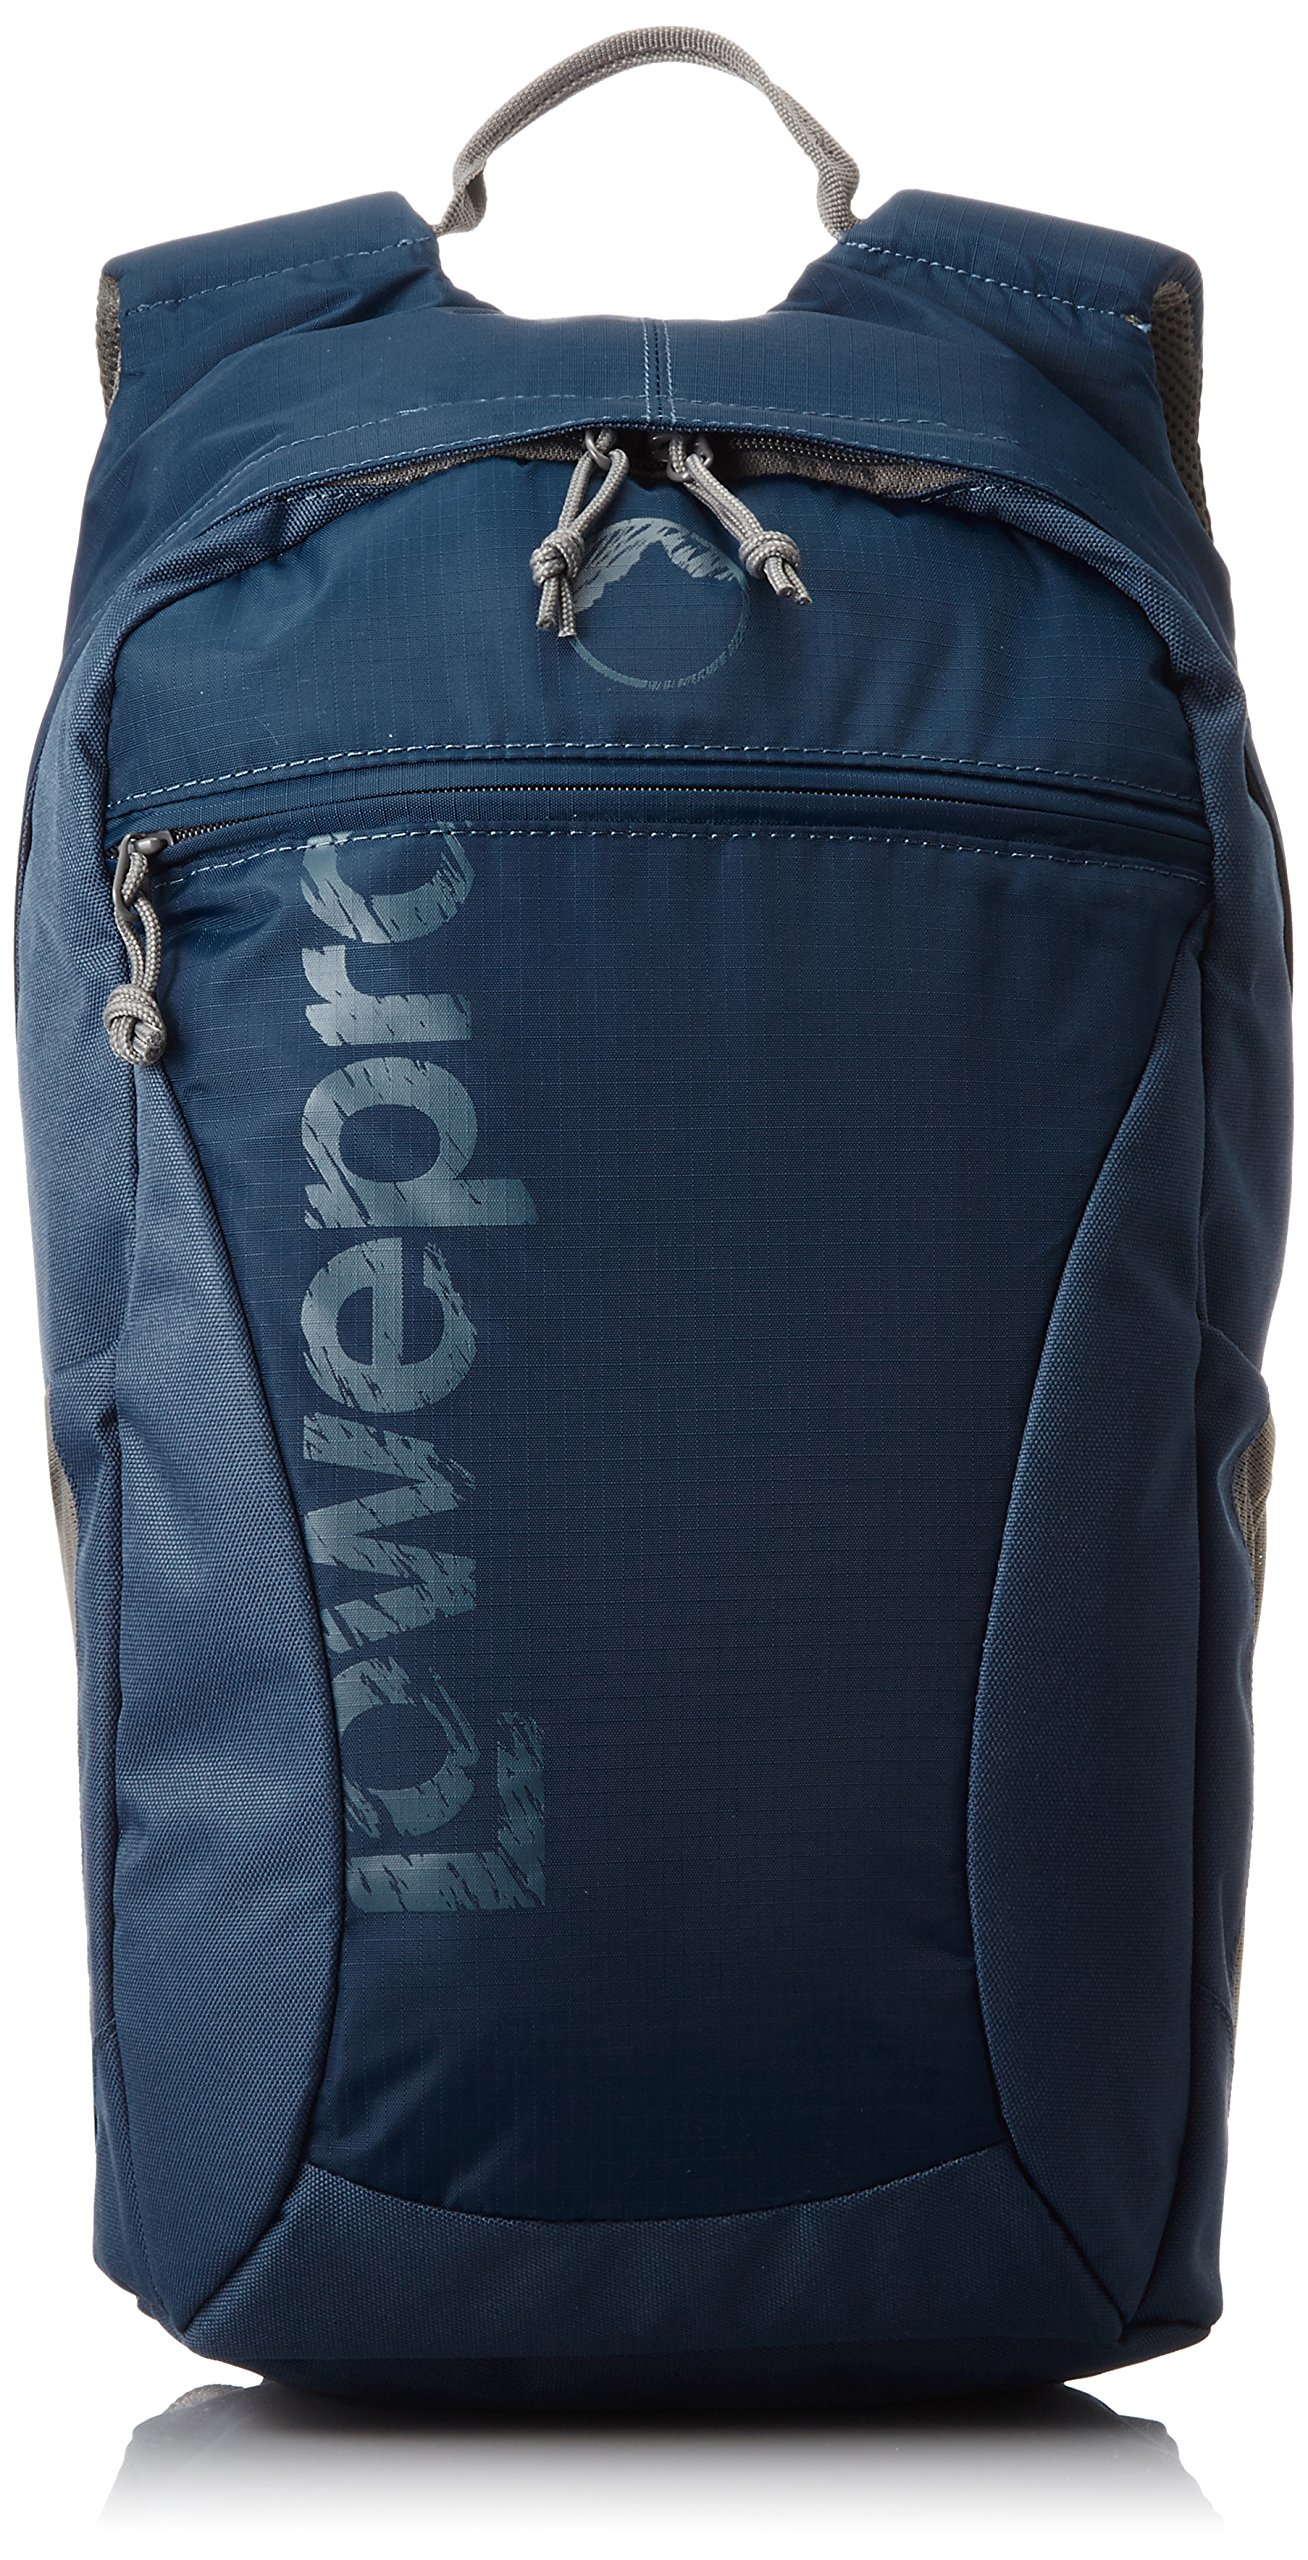 Lowepro Photo Hatchback 16L AW II. Lightweight Sporty Camera Backpack for Compact DSLR and Mirrorless Cameras